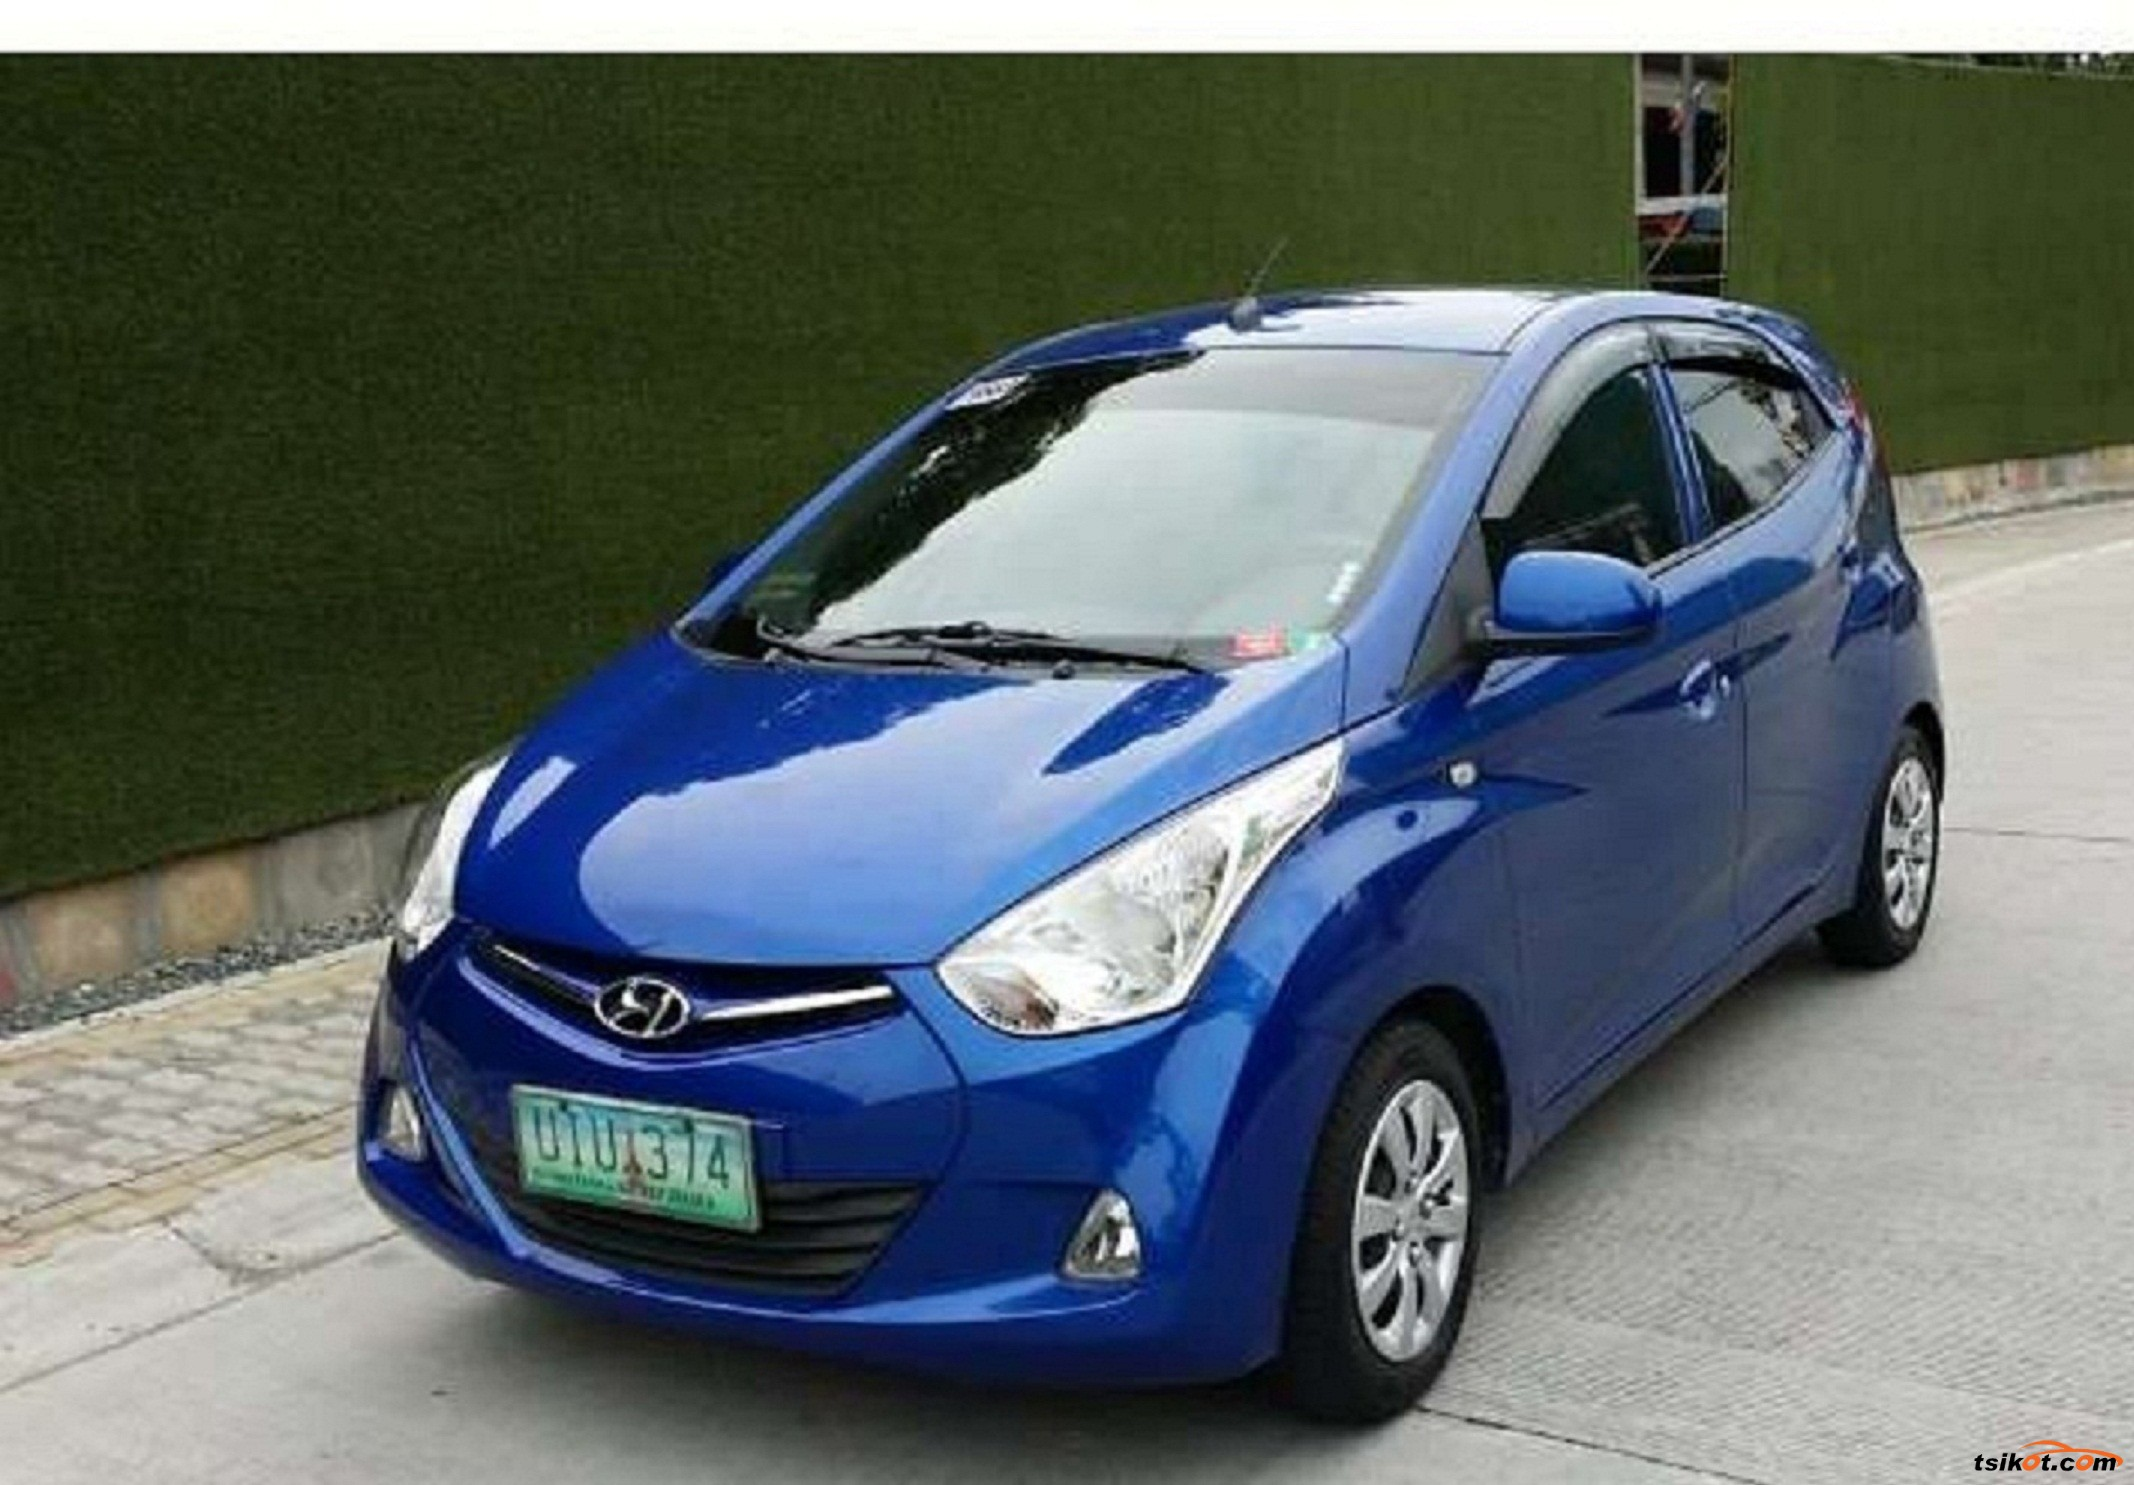 Hyundai Cars For Sale Philippines